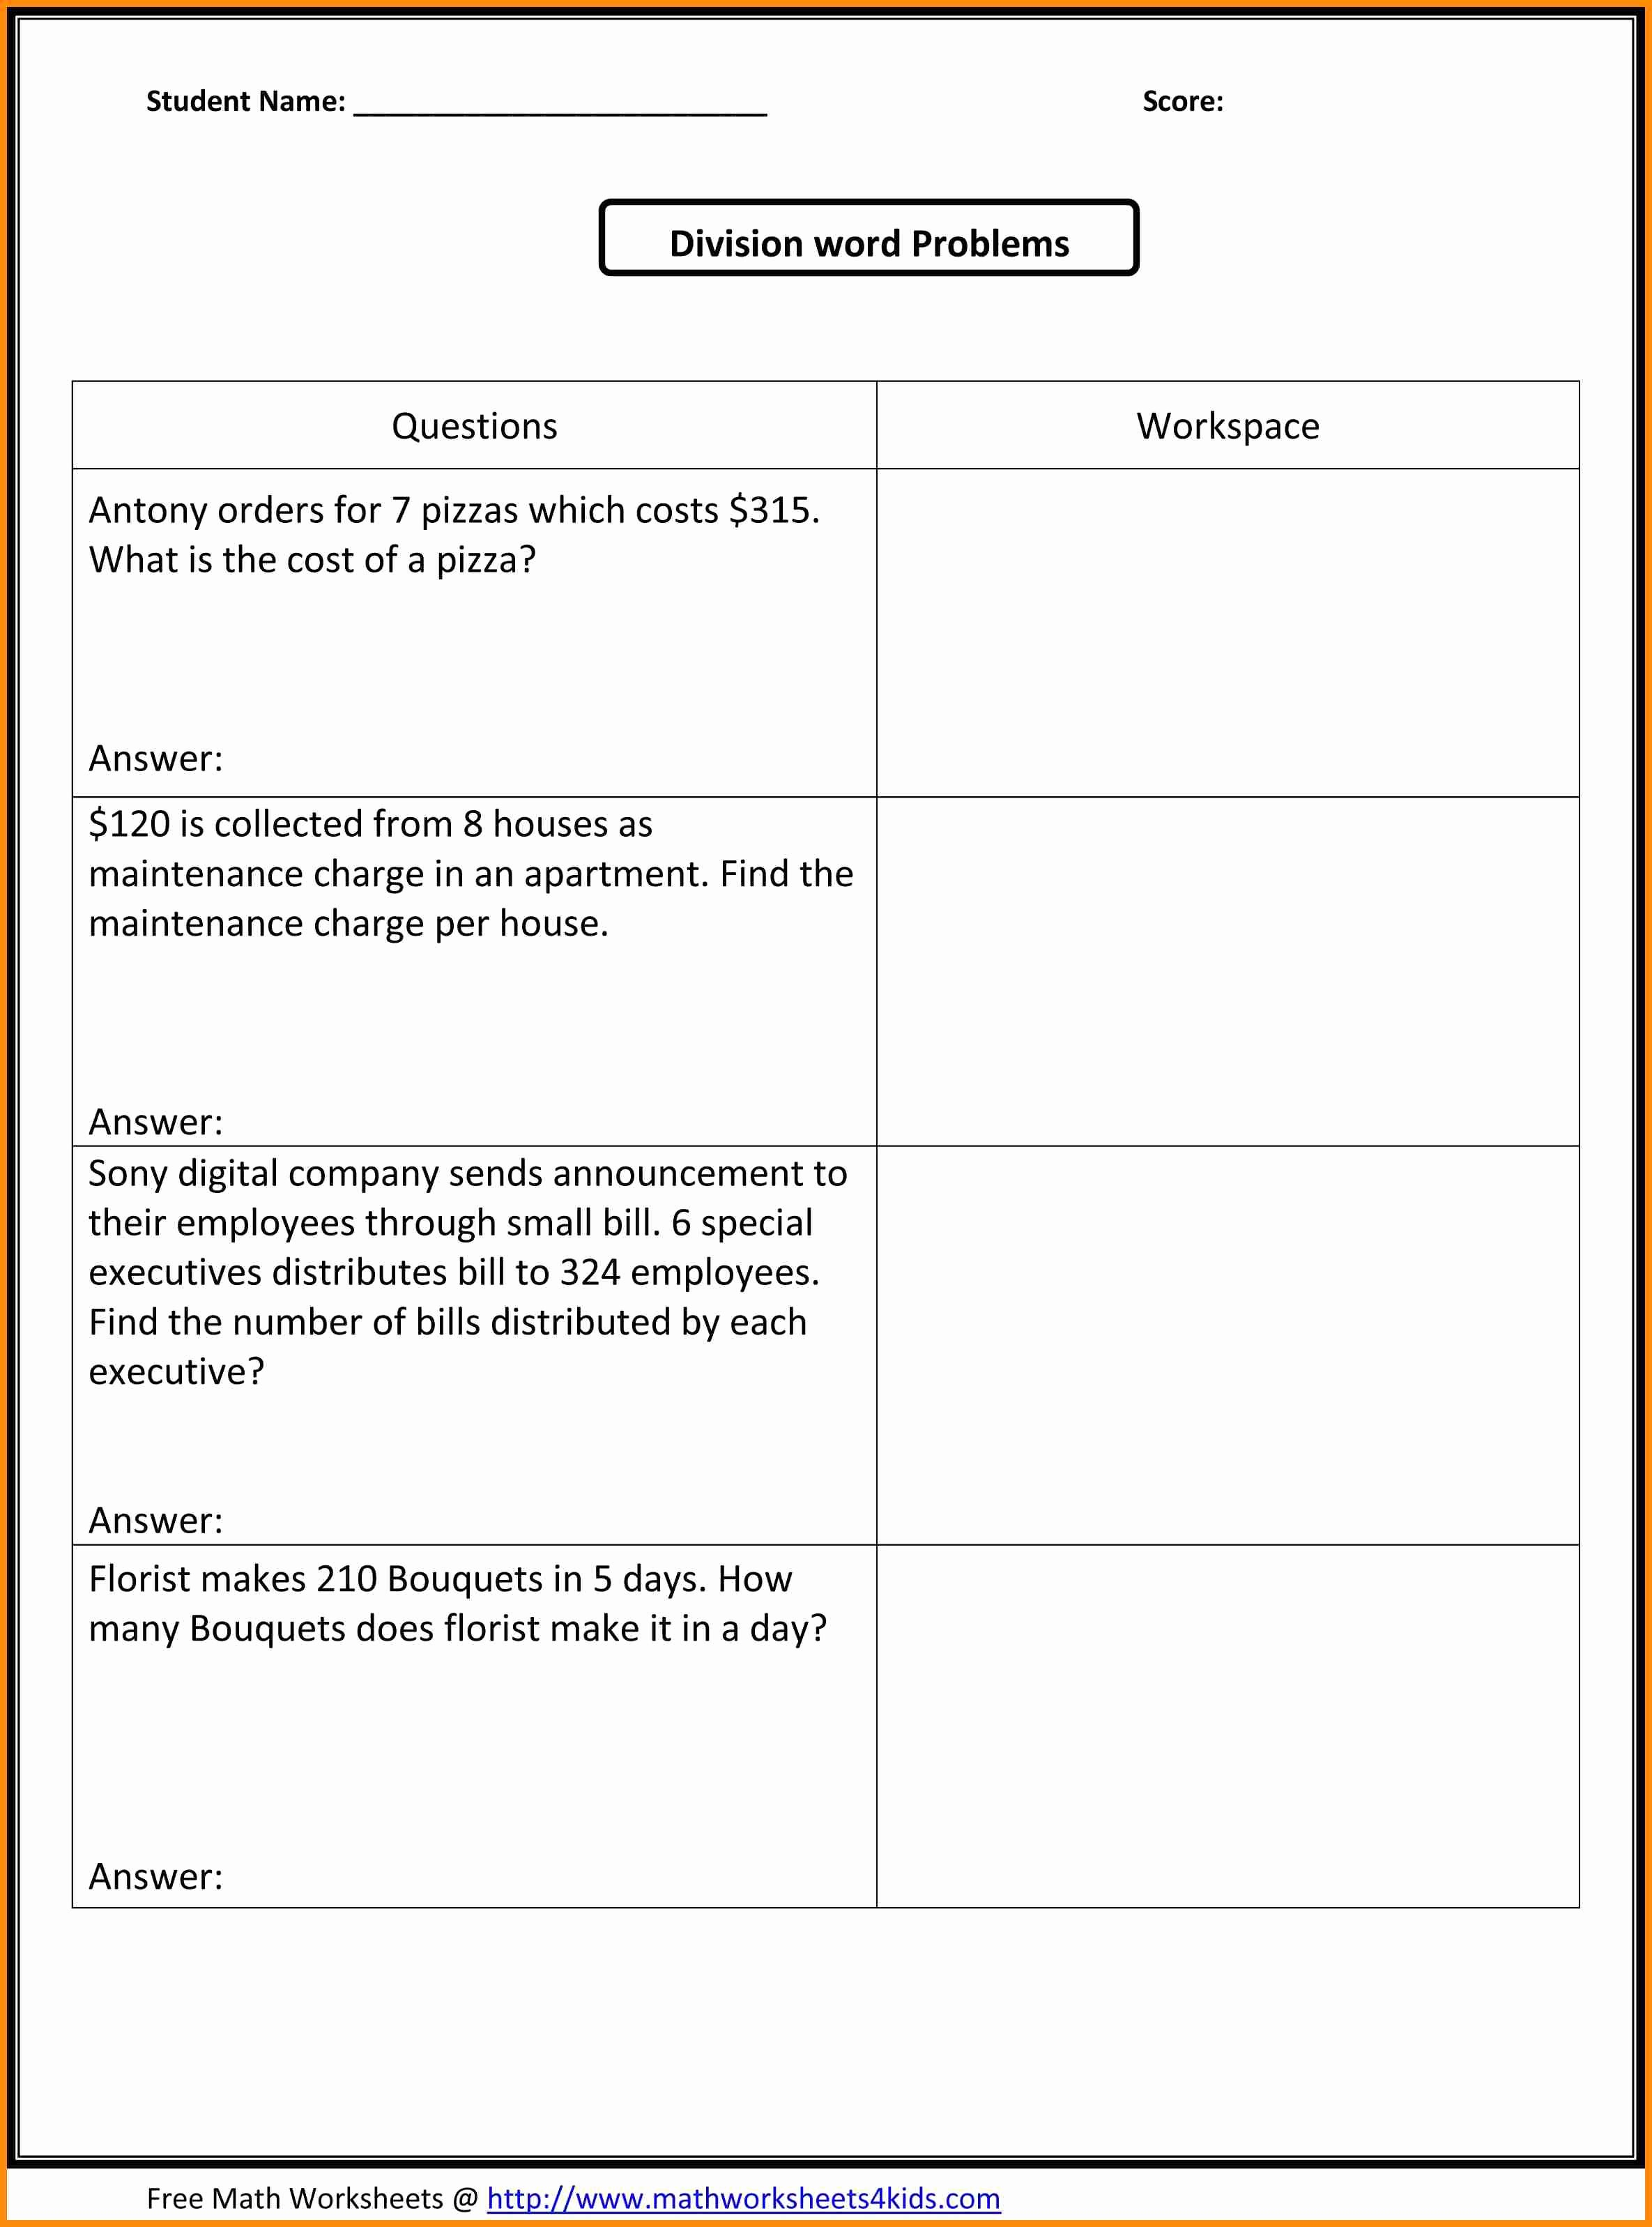 Multiplying Fractions Word Problems Worksheet Awesome Multiplying and Dividing Fractions Word Problems